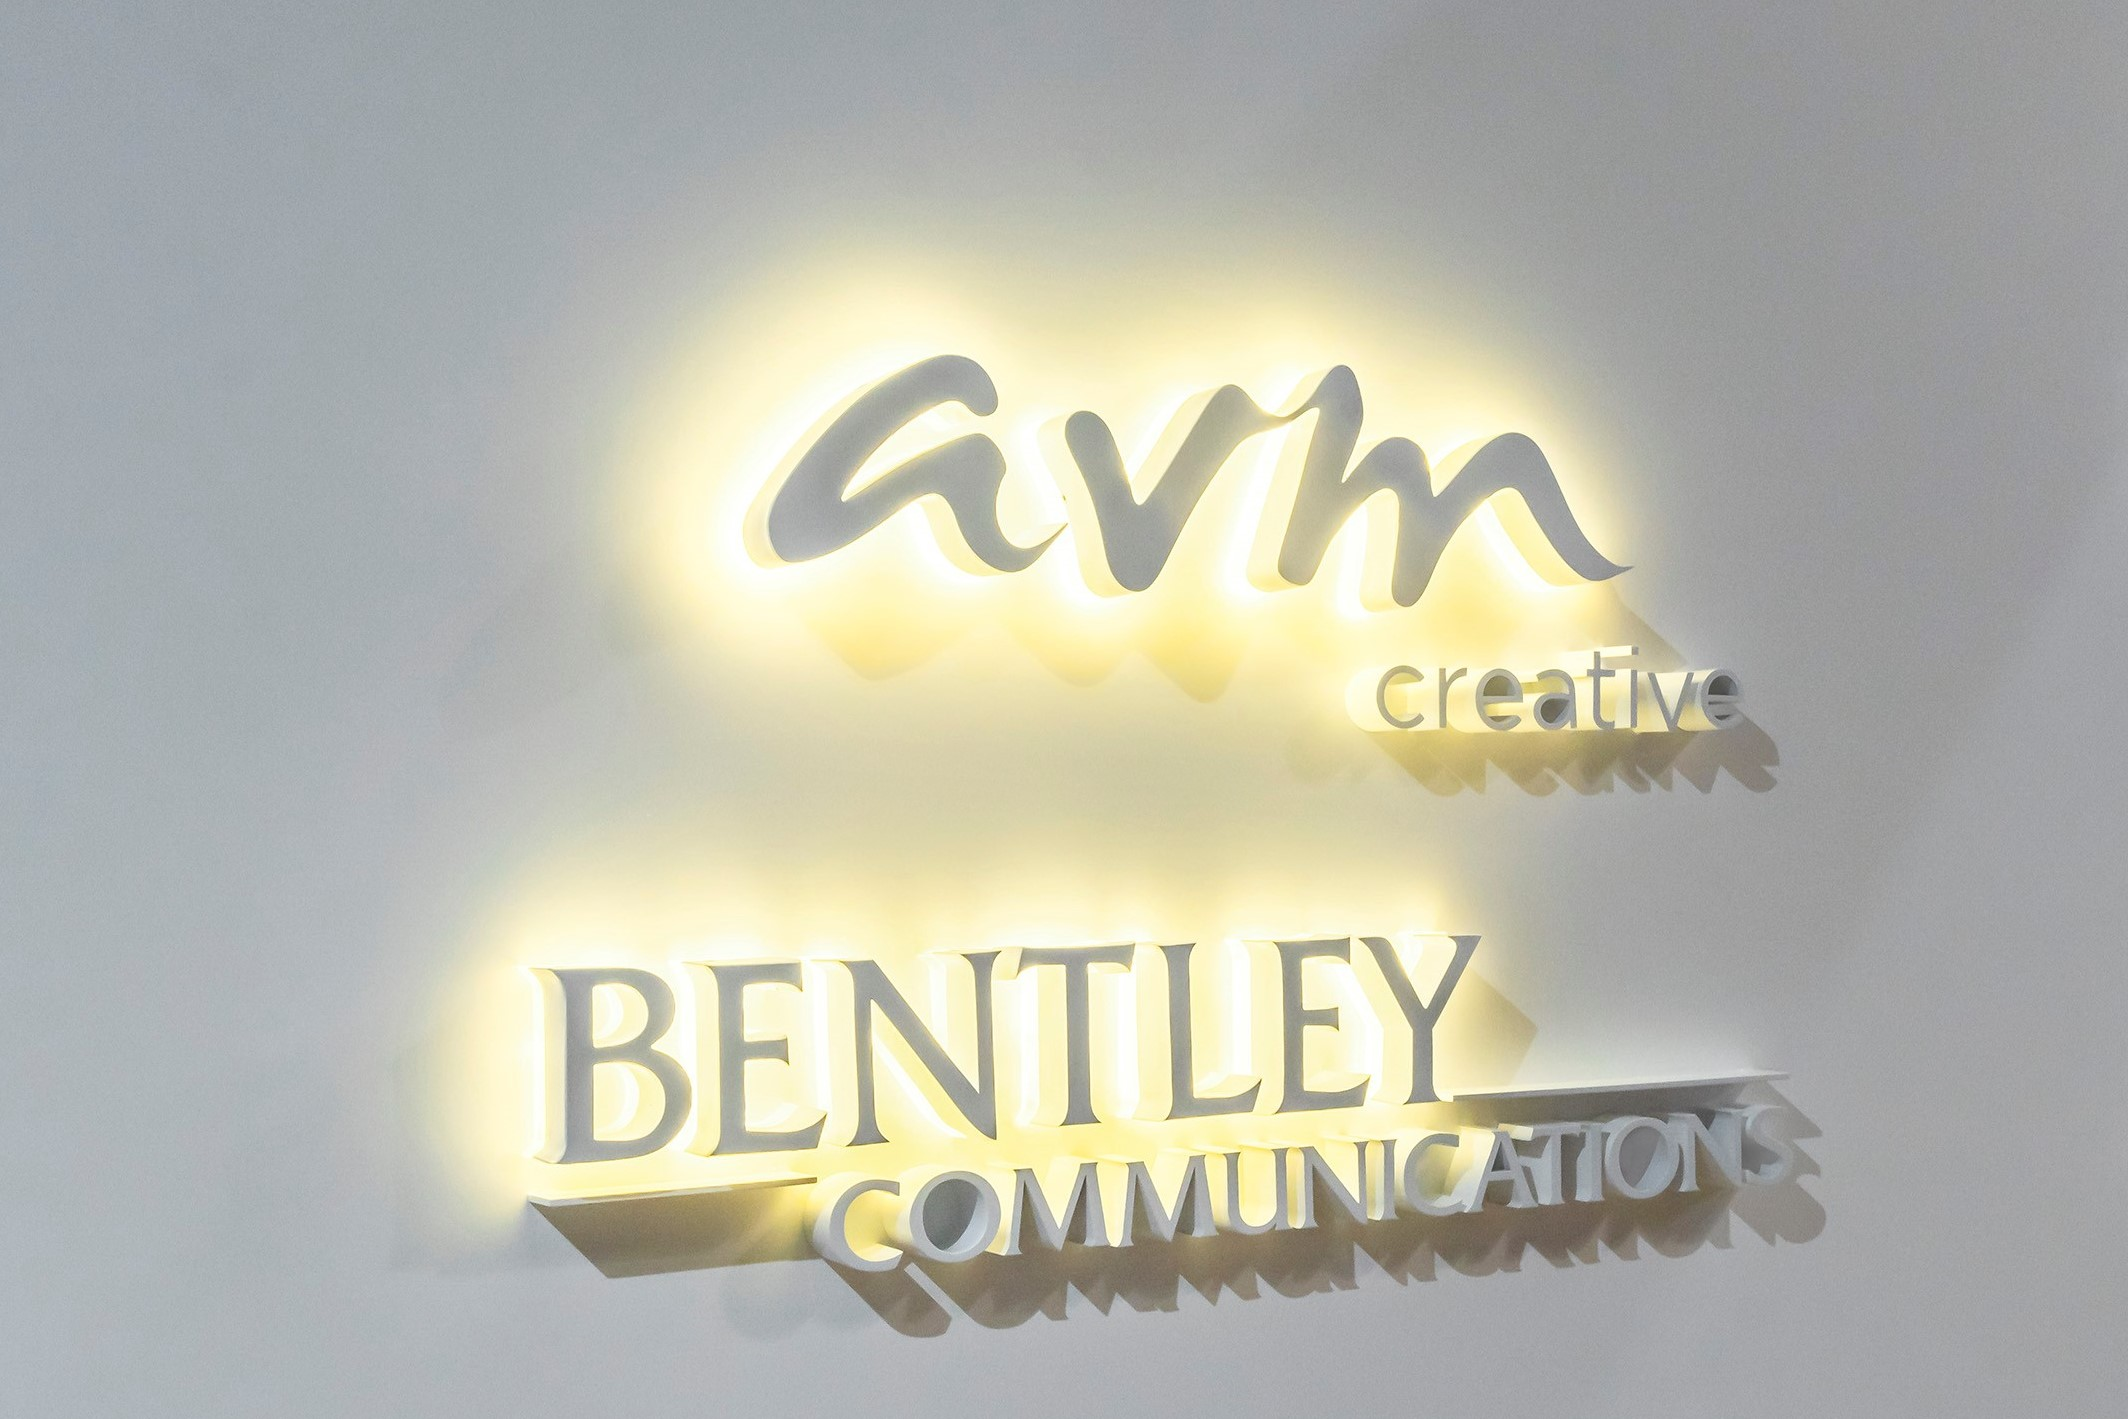 Bentley Communications